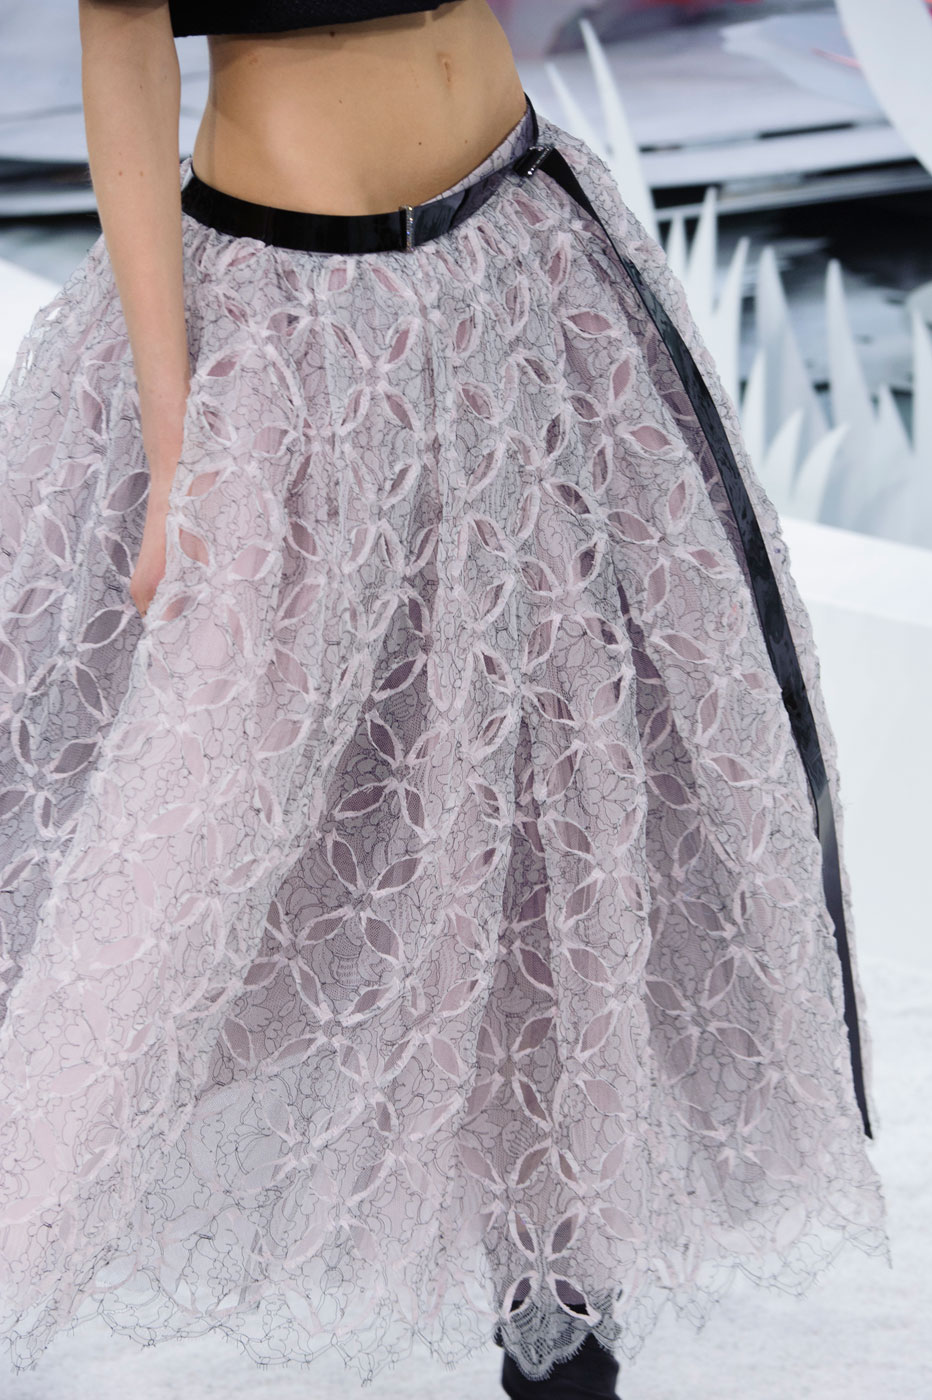 Chanel-fashion-runway-show-close-ups-haute-couture-paris-spring-summer-2015-the-impression-038